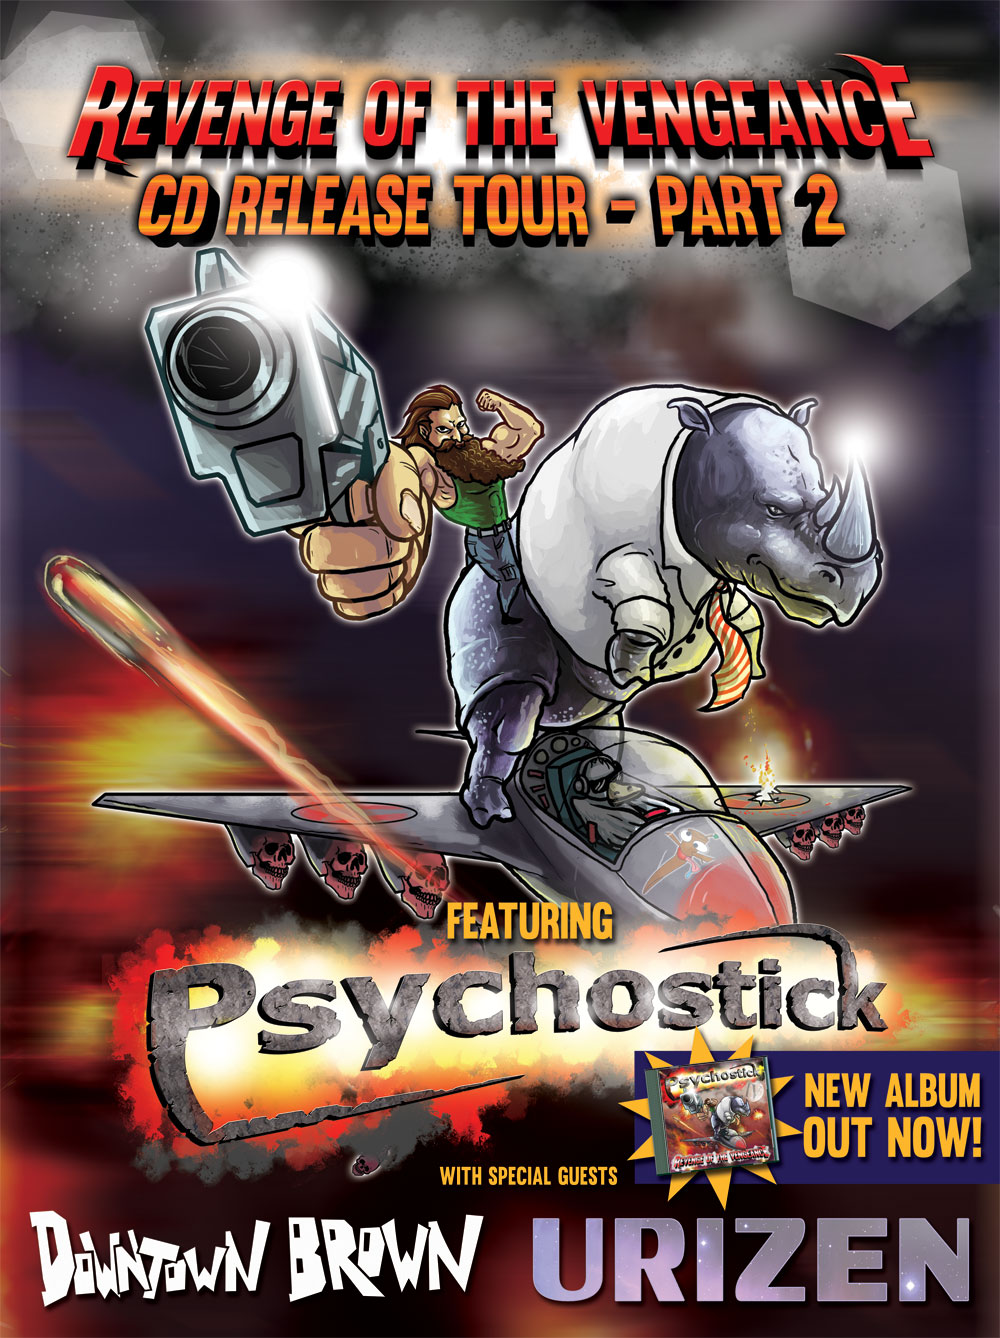 PSYCHOSTICK Confirmed For Dirt Fest 2015 and Tour Dates